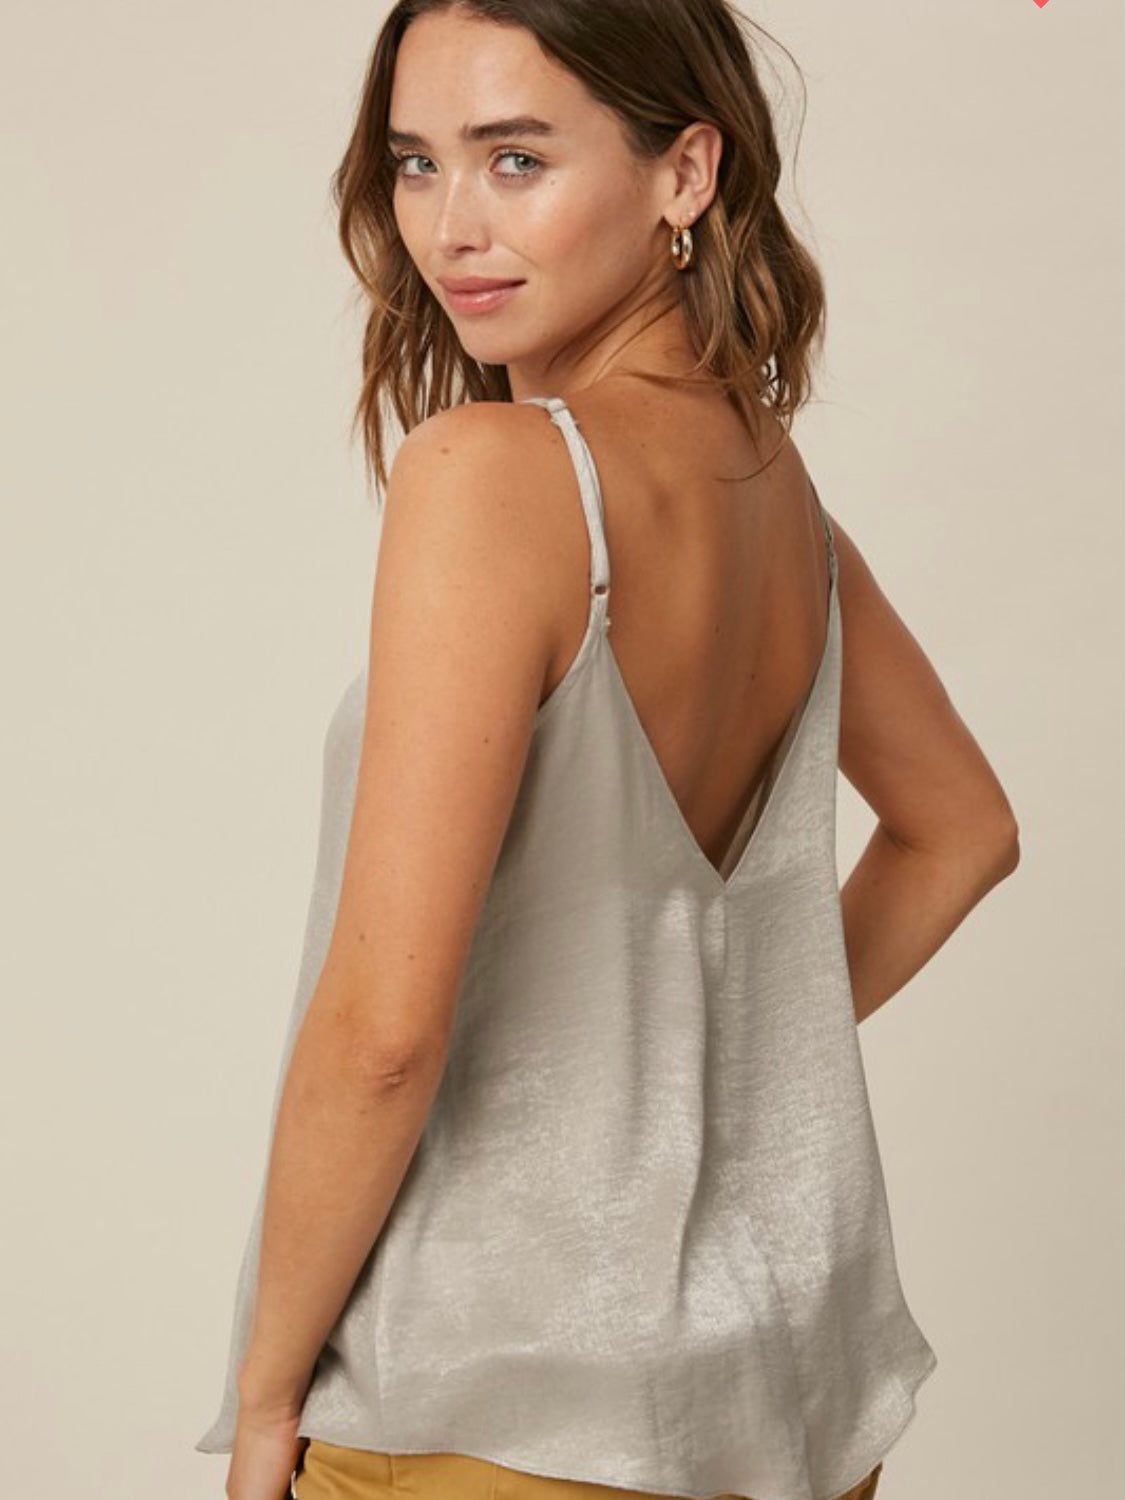 WITH MY WHOLE HEART - SILVER VNECK LACE TRIM CAMI